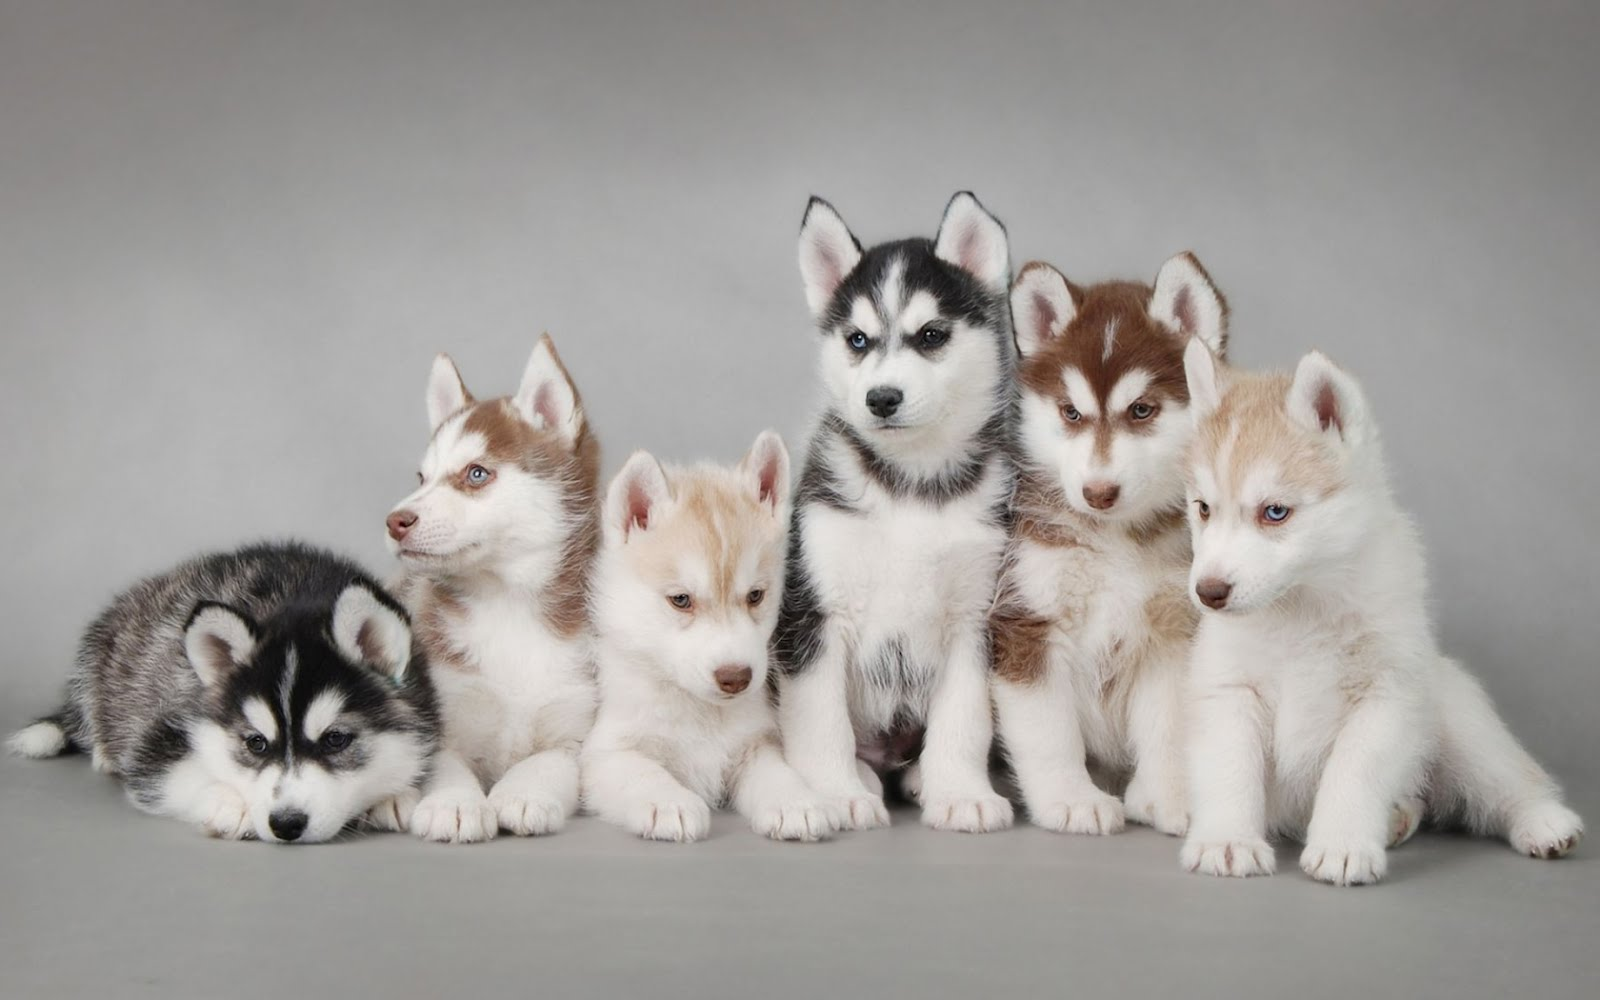 Siberian Husky Puppies - Hd Desktop Wallpaper